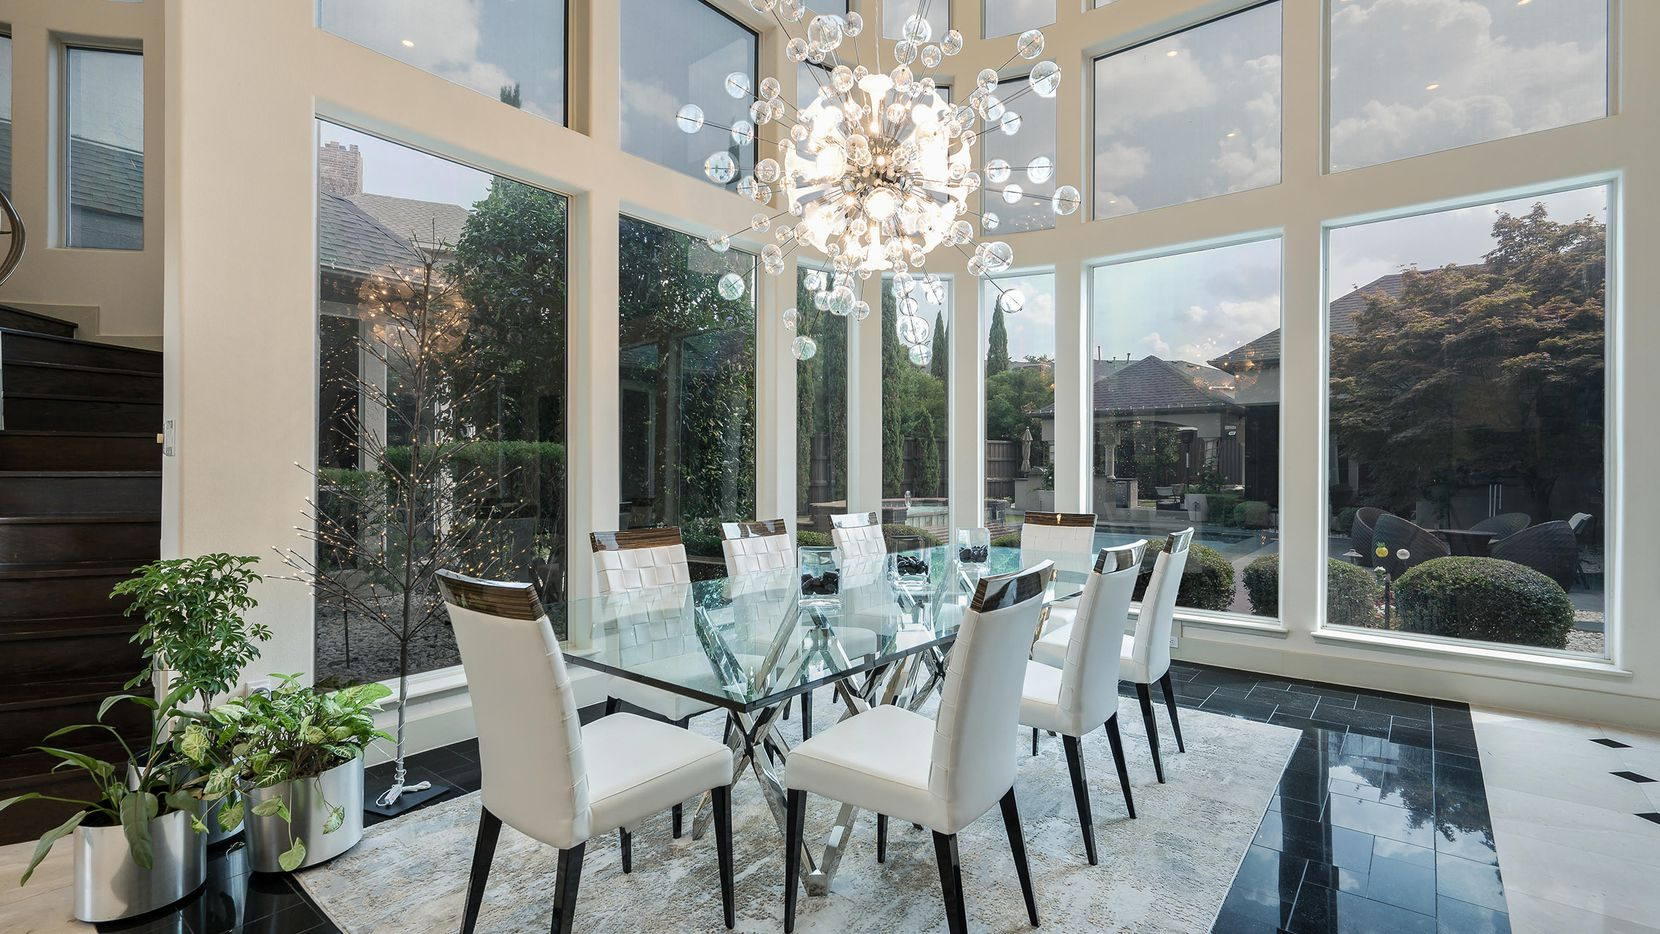 The estate at 3509 Cedar Falls Lane in Plano features large windows with panoramic views.